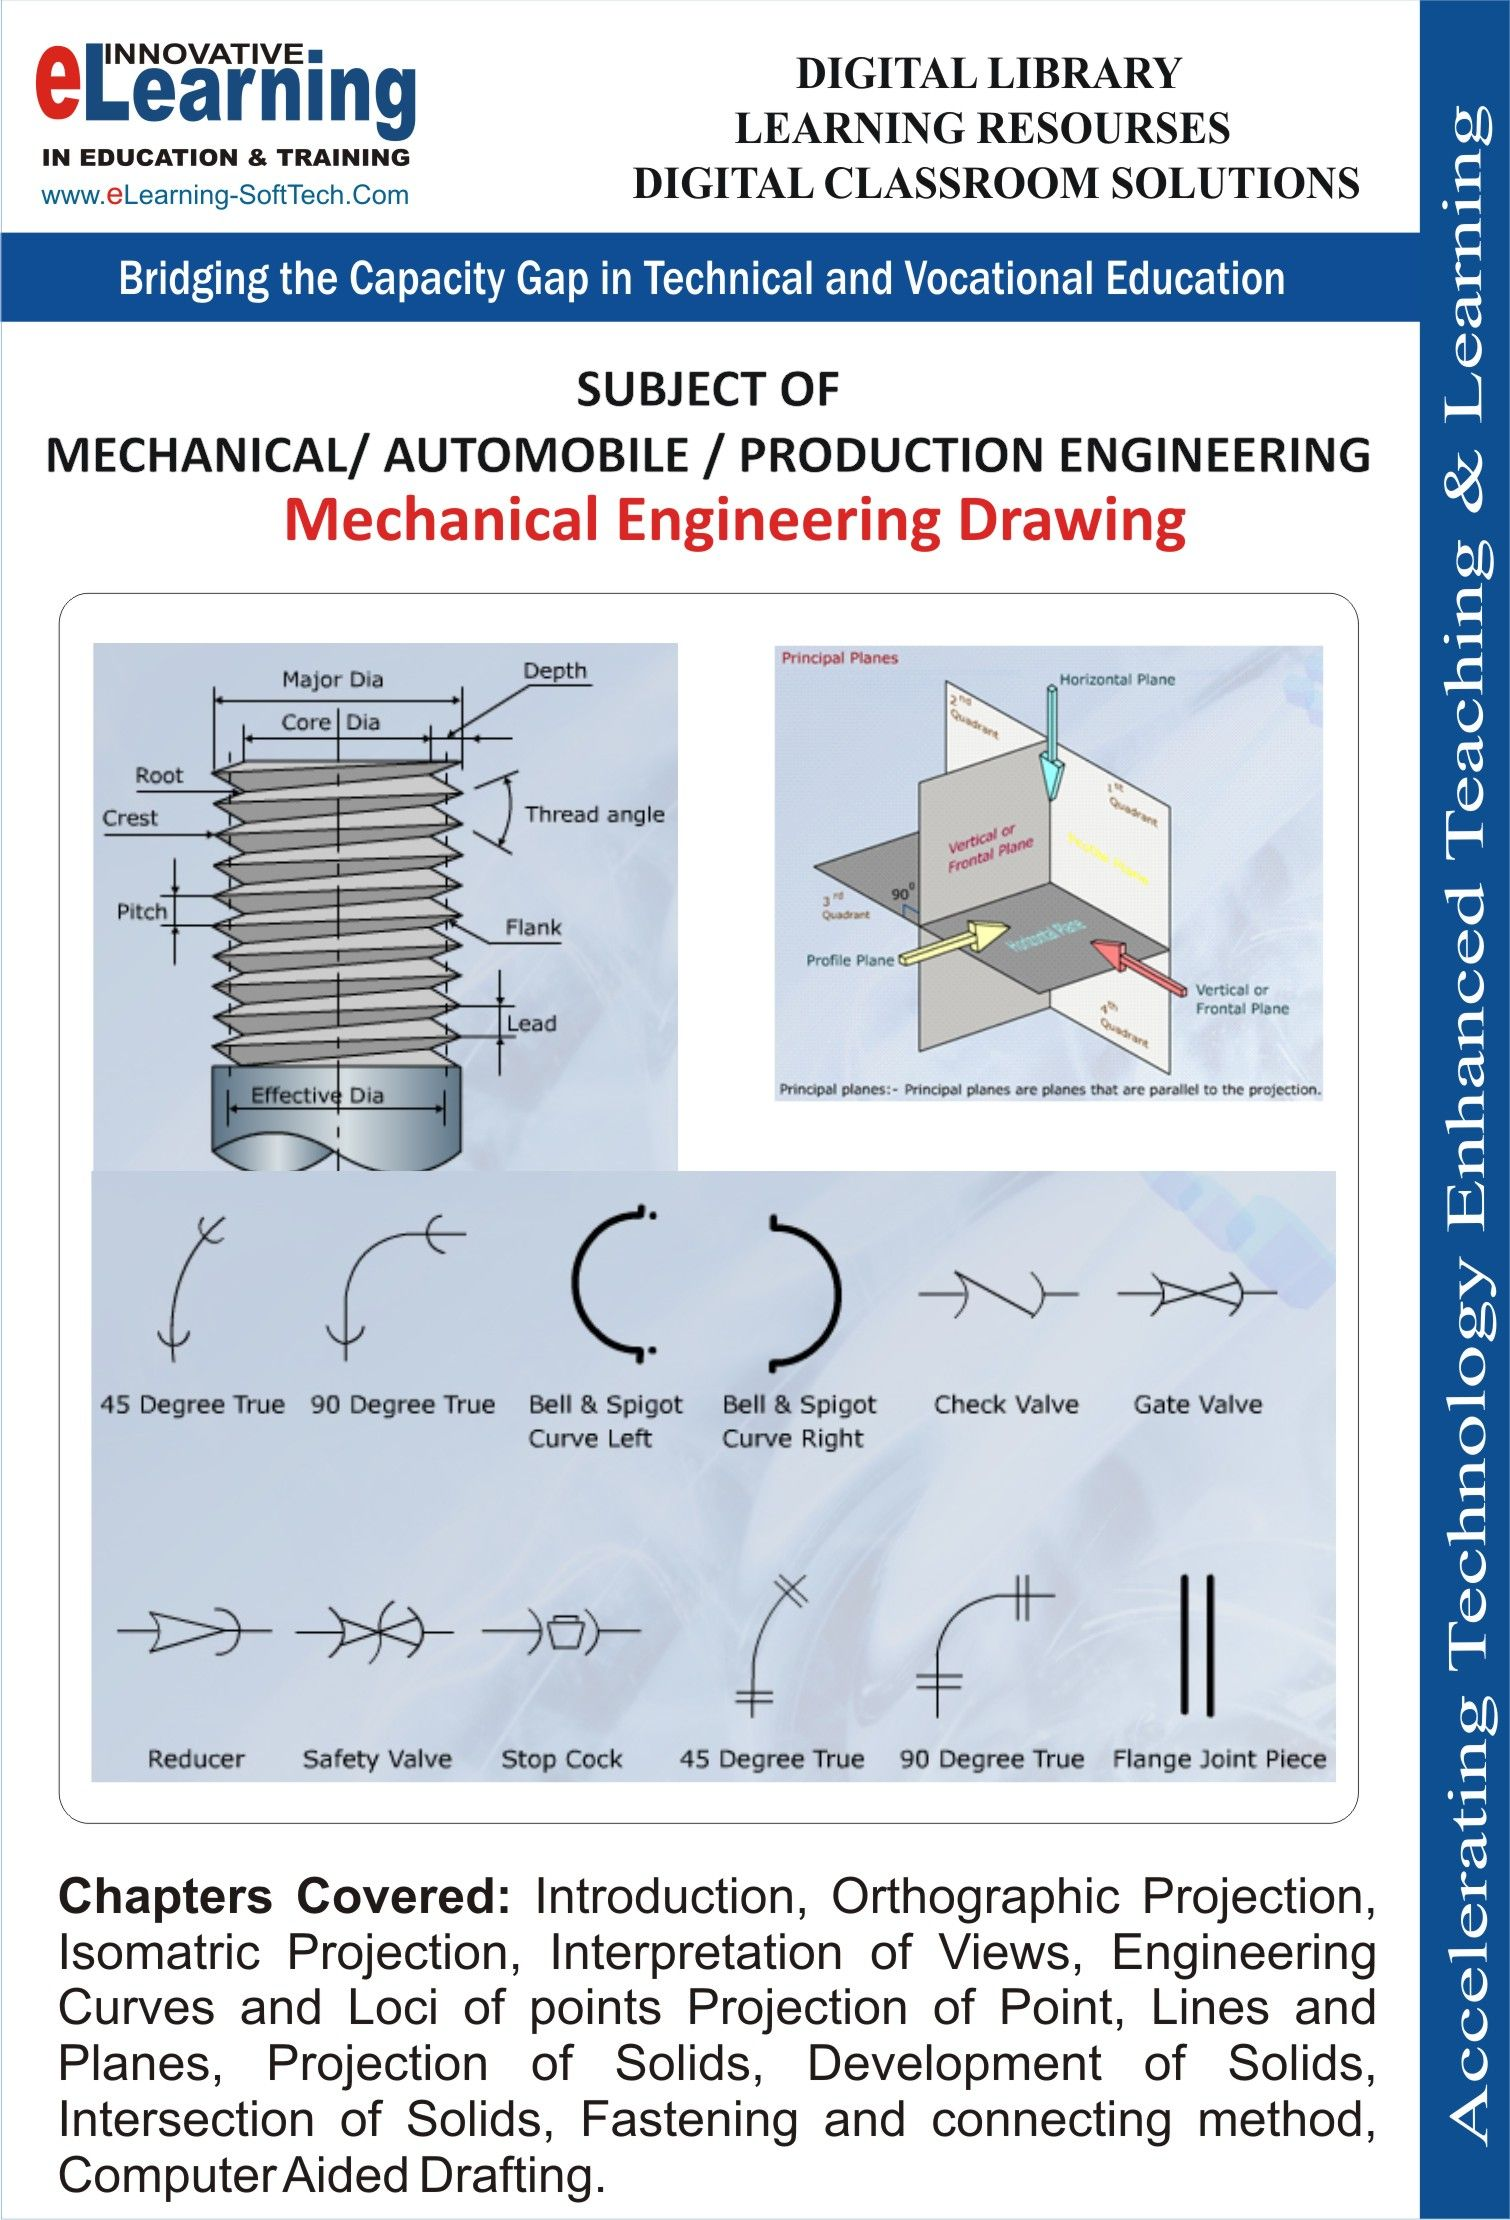 elearning software solution for mechanical engineering drawing rh pinterest com